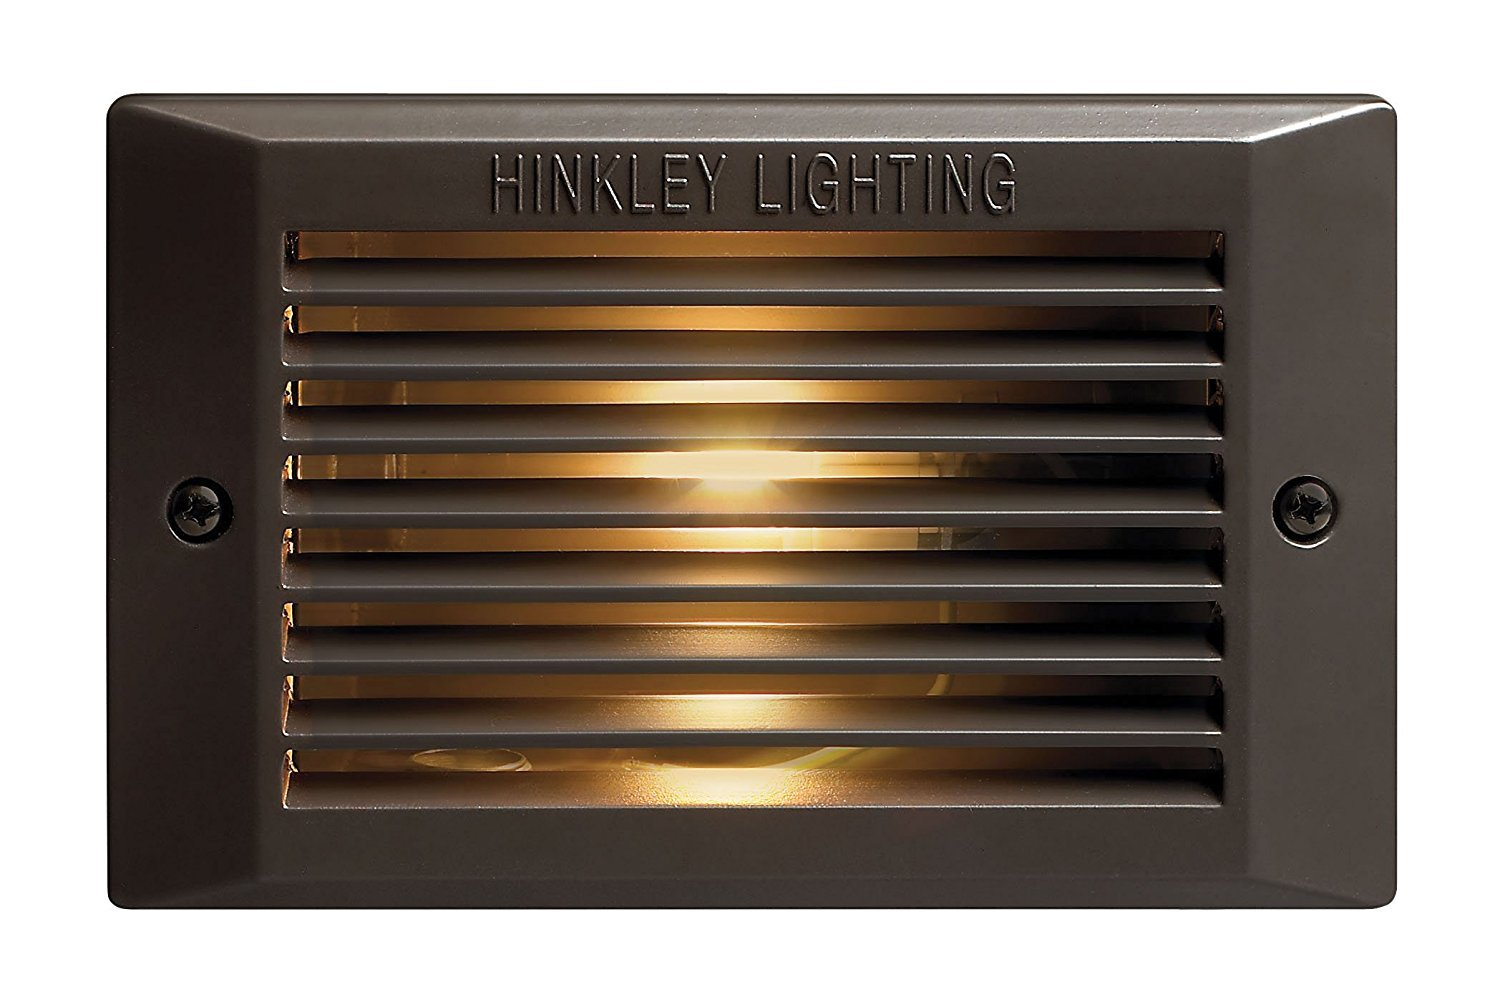 Hinkley Lighting 58015BZ-LED 120-Volt Line-Voltage LED Step Light with 1.5-Watt LED Light Source, Bronze Powder Coat by Hinkley